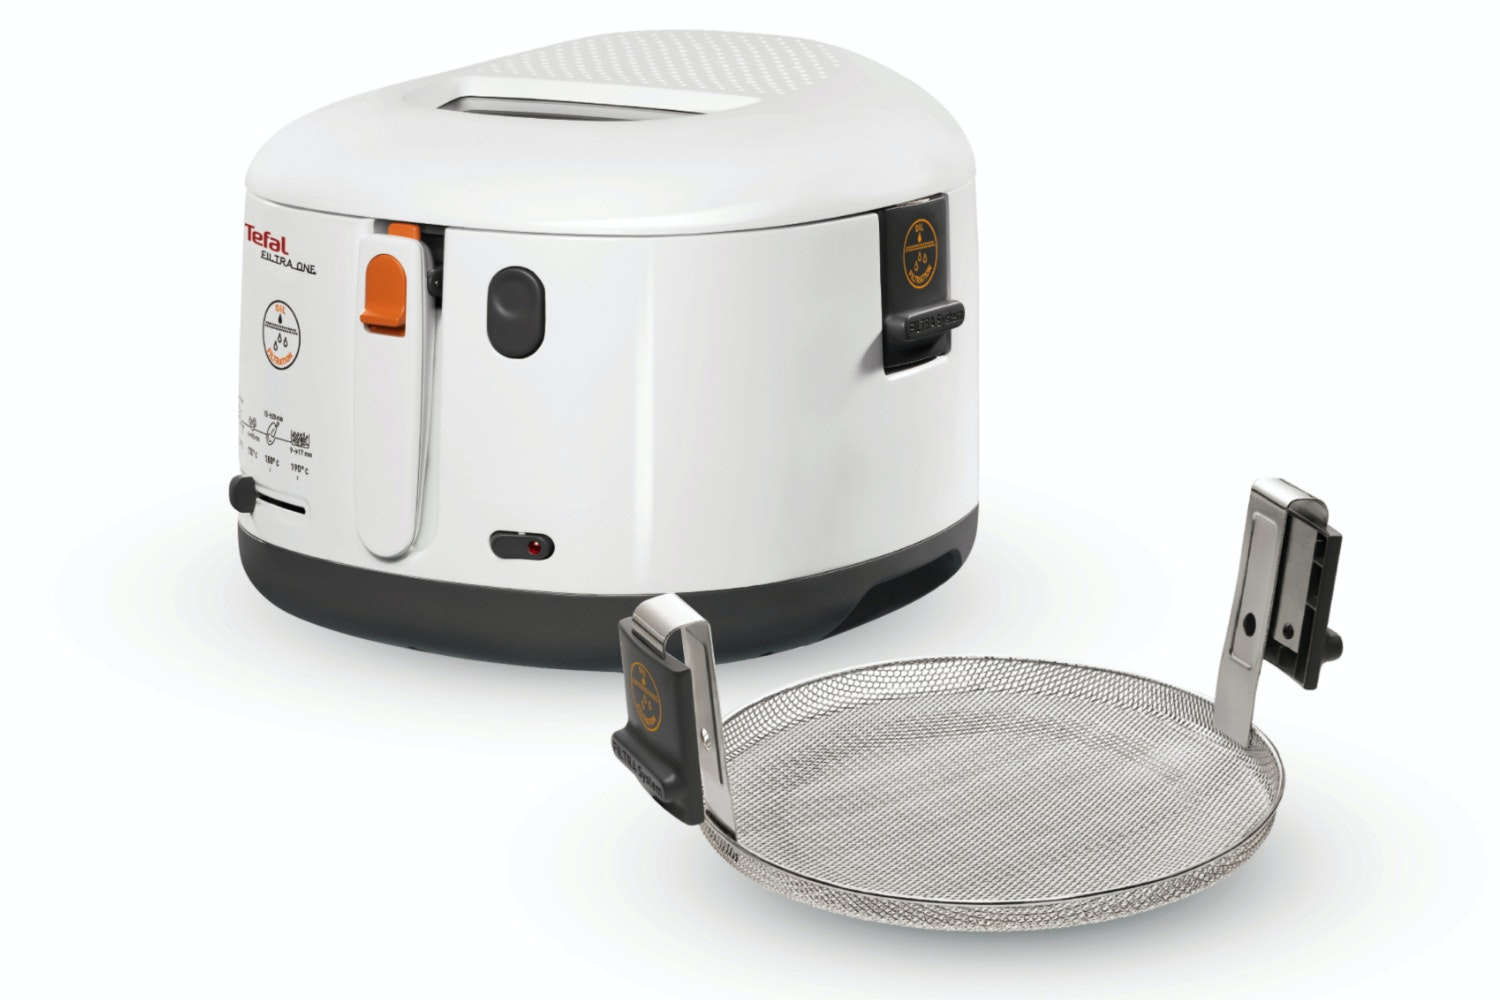 Tefal Filtra One Deep Fryer | FF162140